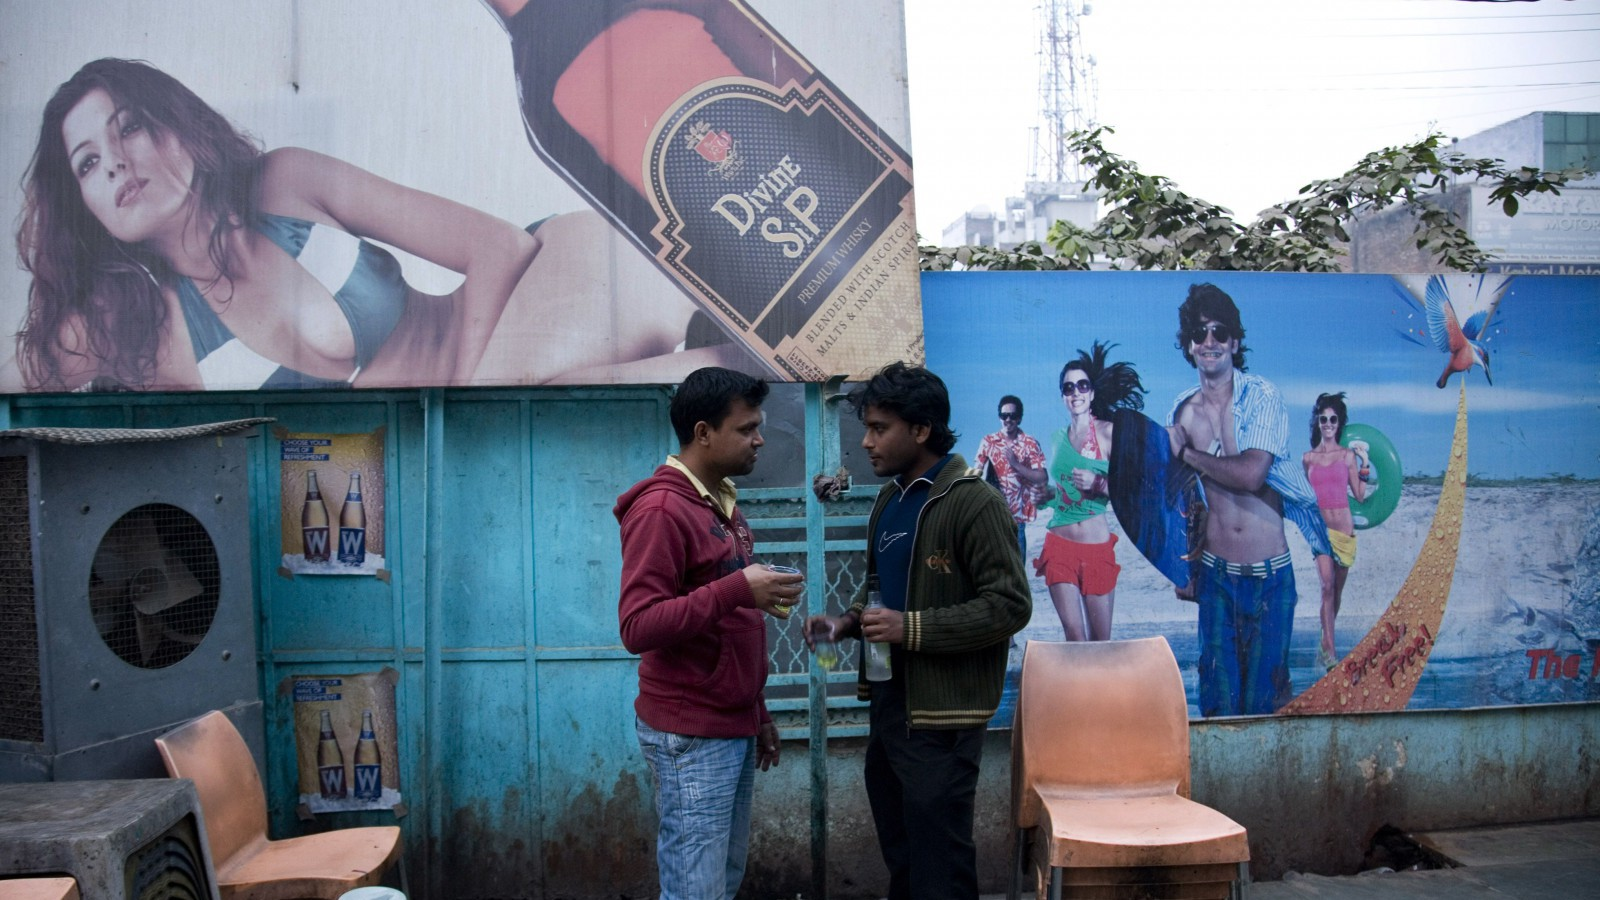 Two Indian men share a moment as they drink outside a state-sanctioned liquor shop in Allahabad, India, Thursday, Dec. 15, 2011. Despite religious and cultural taboos against drinking among Indians, 5 percent, roughly 60 million people, are alcoholics. Two-thirds of the alcohol consumed in the country is illegal hooch made in remote villages or undocumented liquor smuggled in, according to The Lancet medical journal. (AP Photo/Rajesh Kumar Singh)